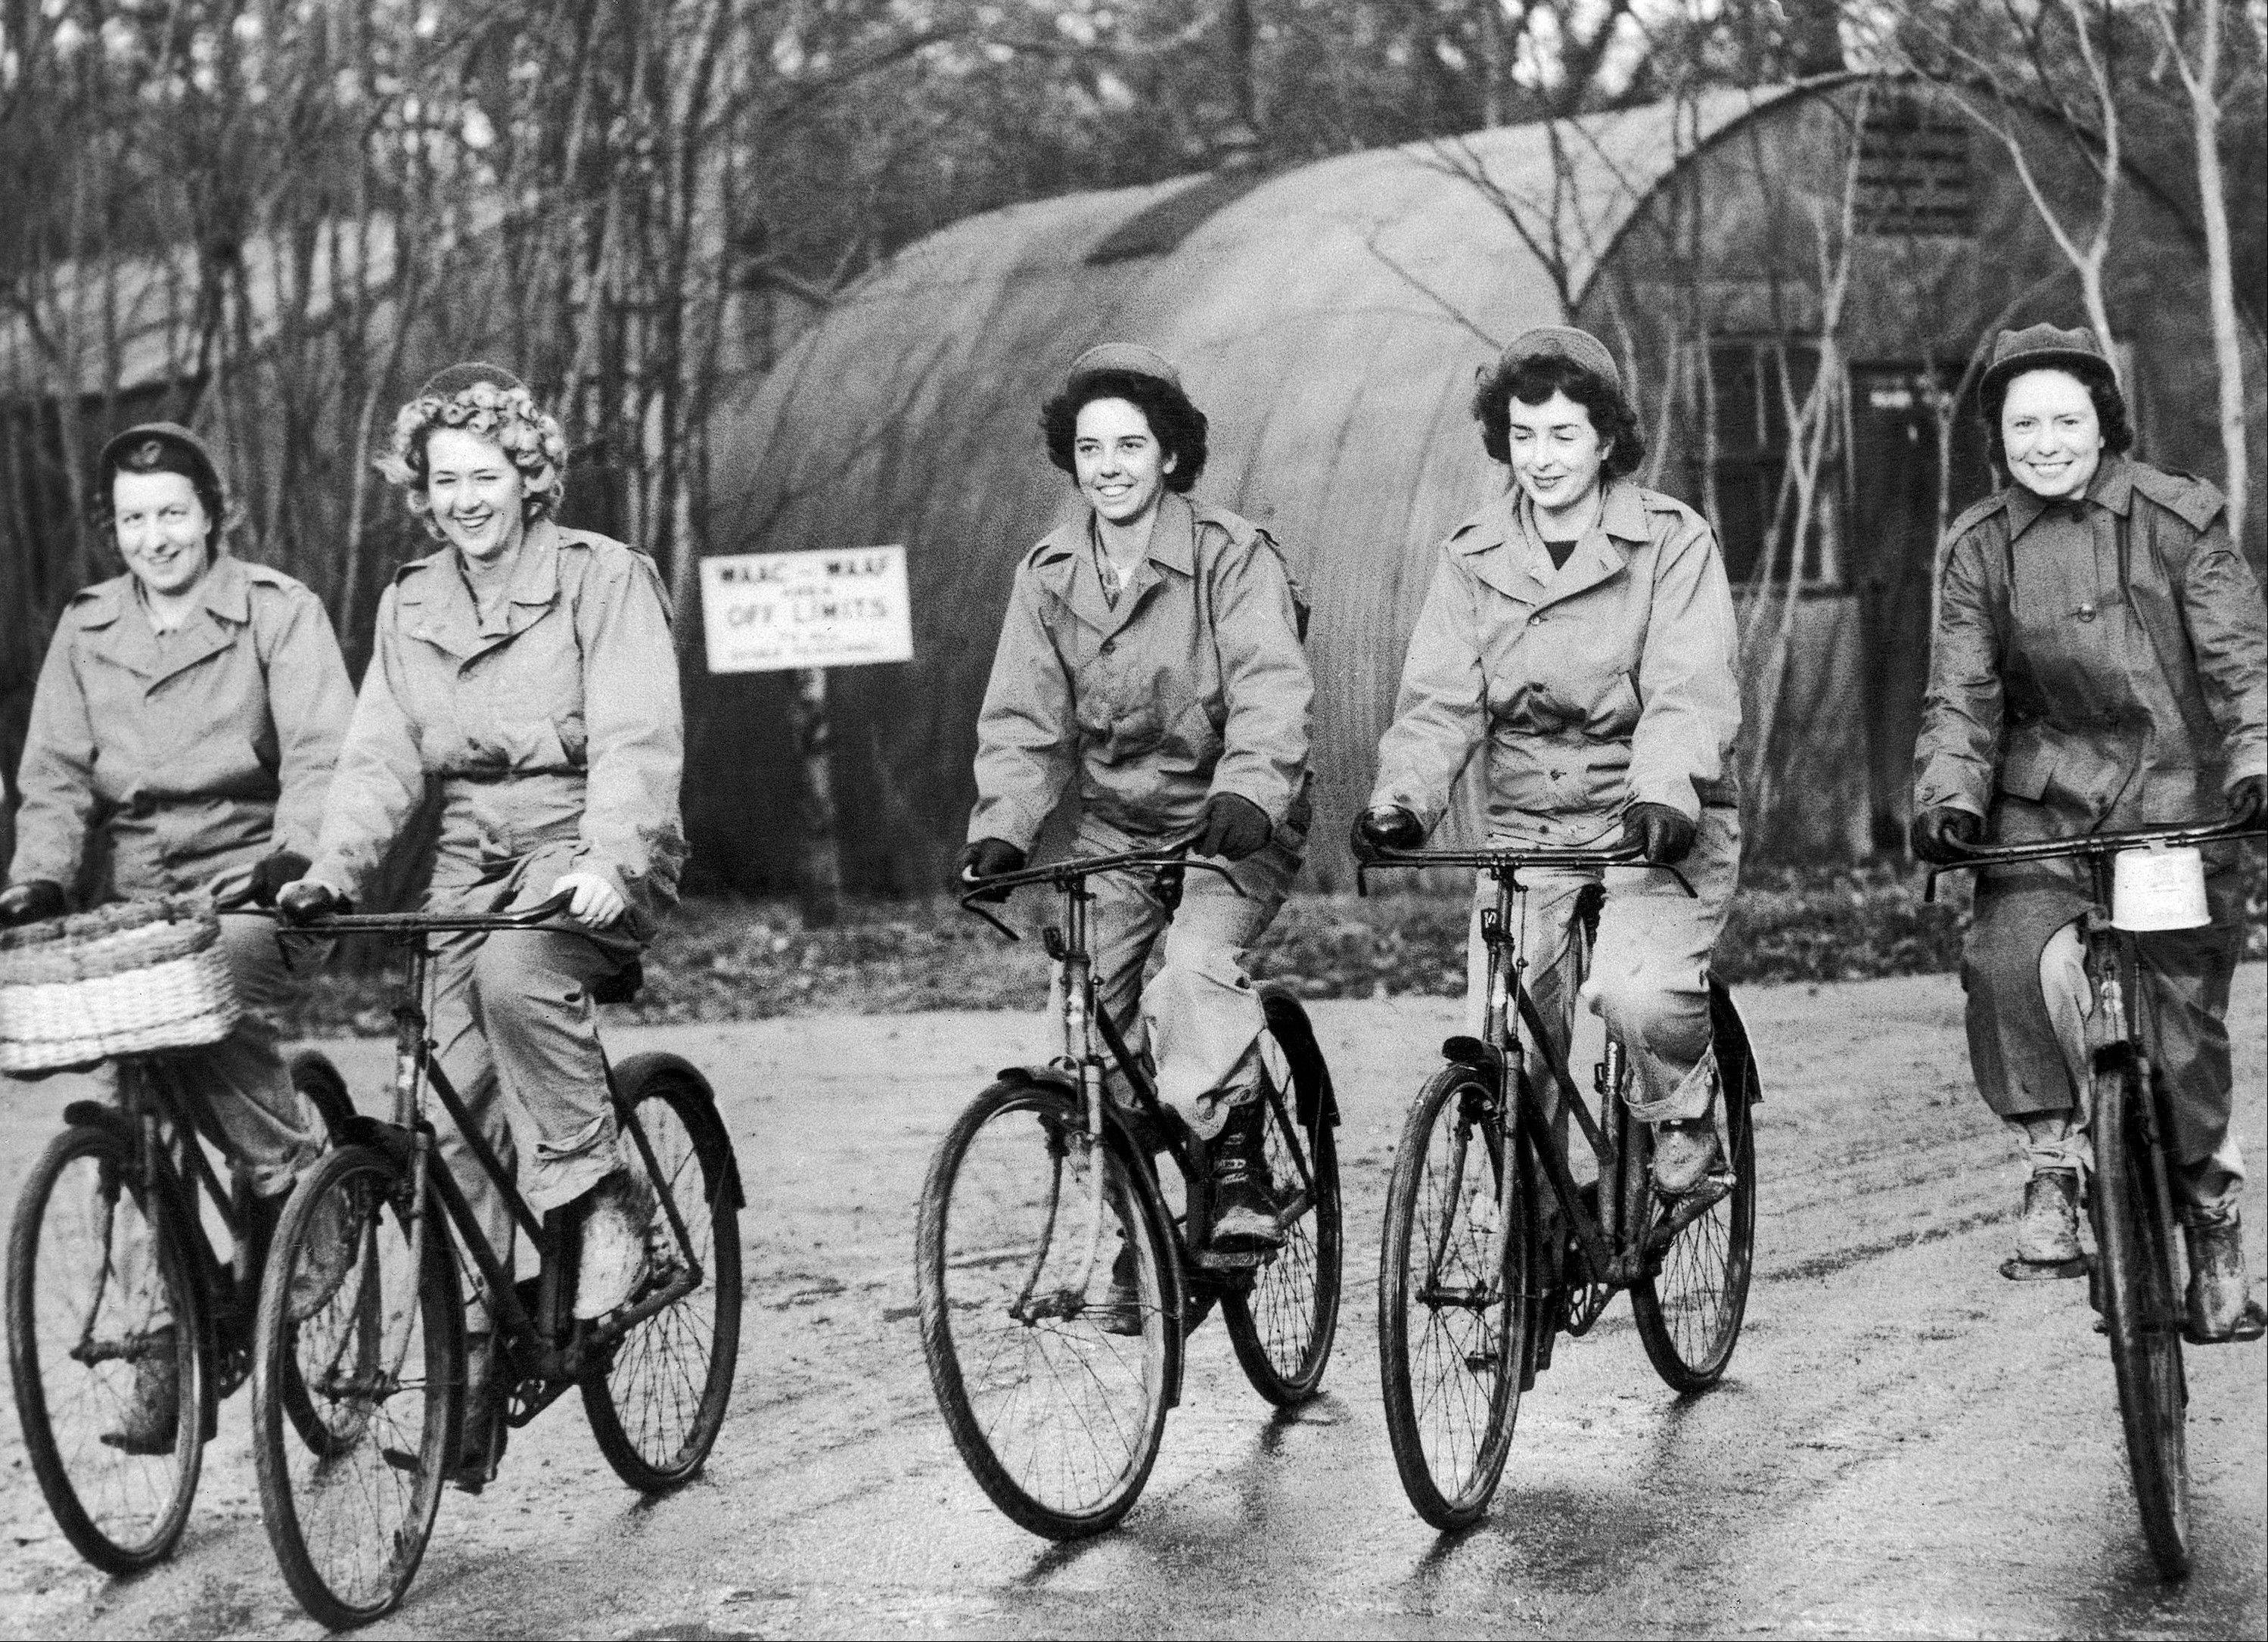 Dec. 22, 1943: Members of the Women Army Corps (WAC) stationed at a U.S. medium bomber station in England, ride bicycles on their way to work.